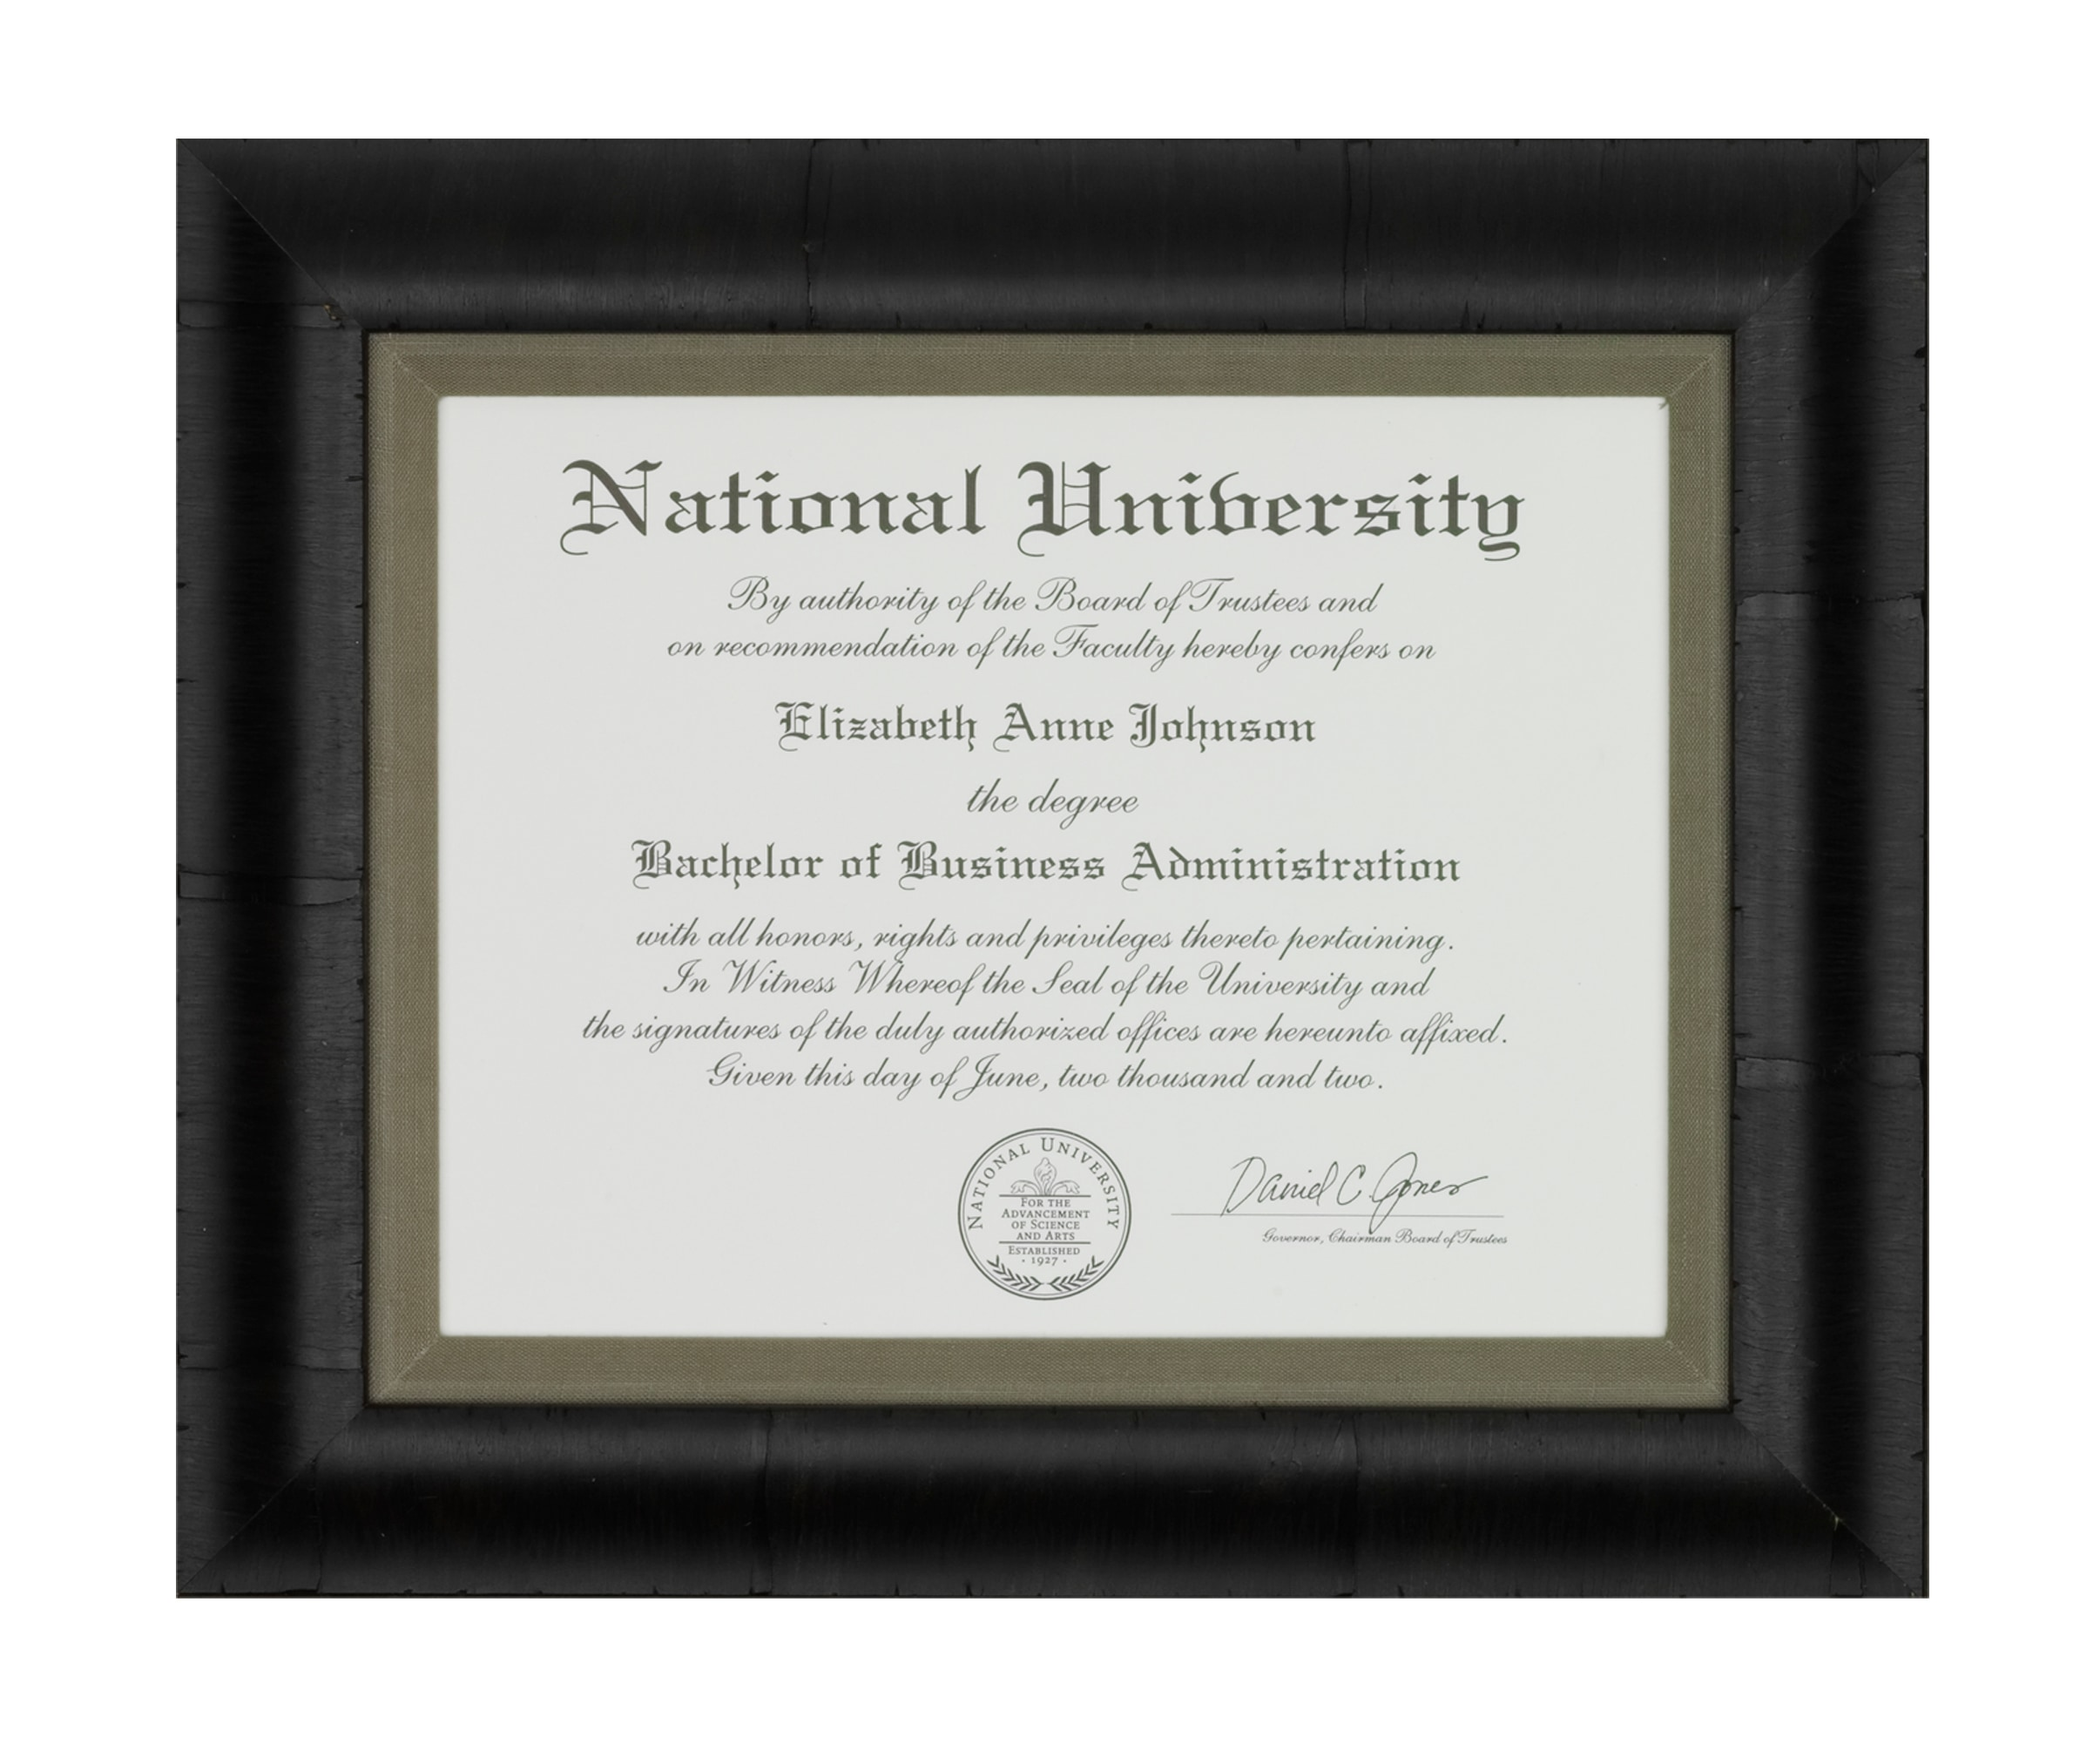 Flax 123964 national university diploma cghylv